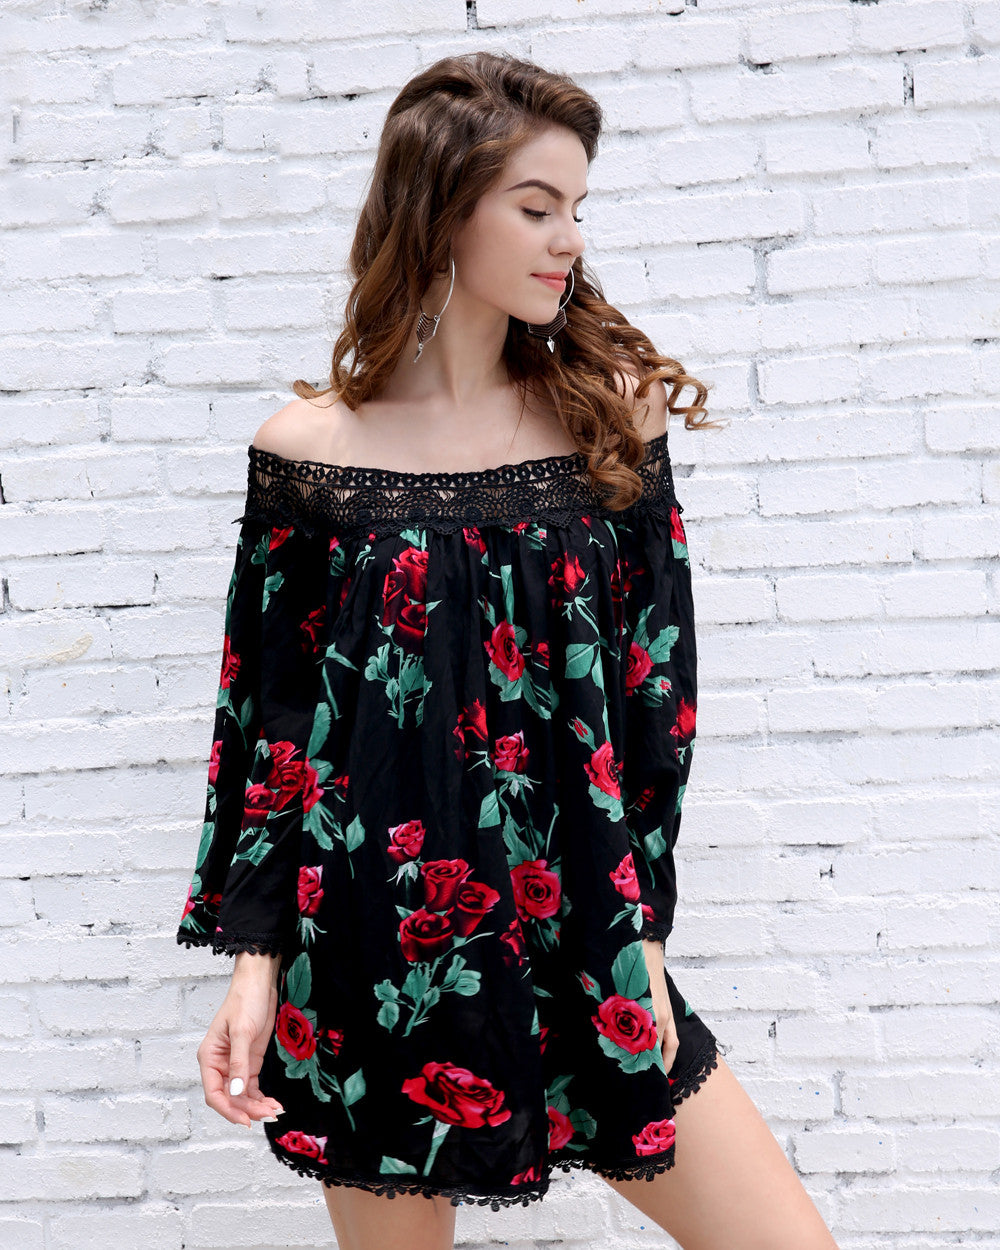 Black Floral Off the Shoulder Dress